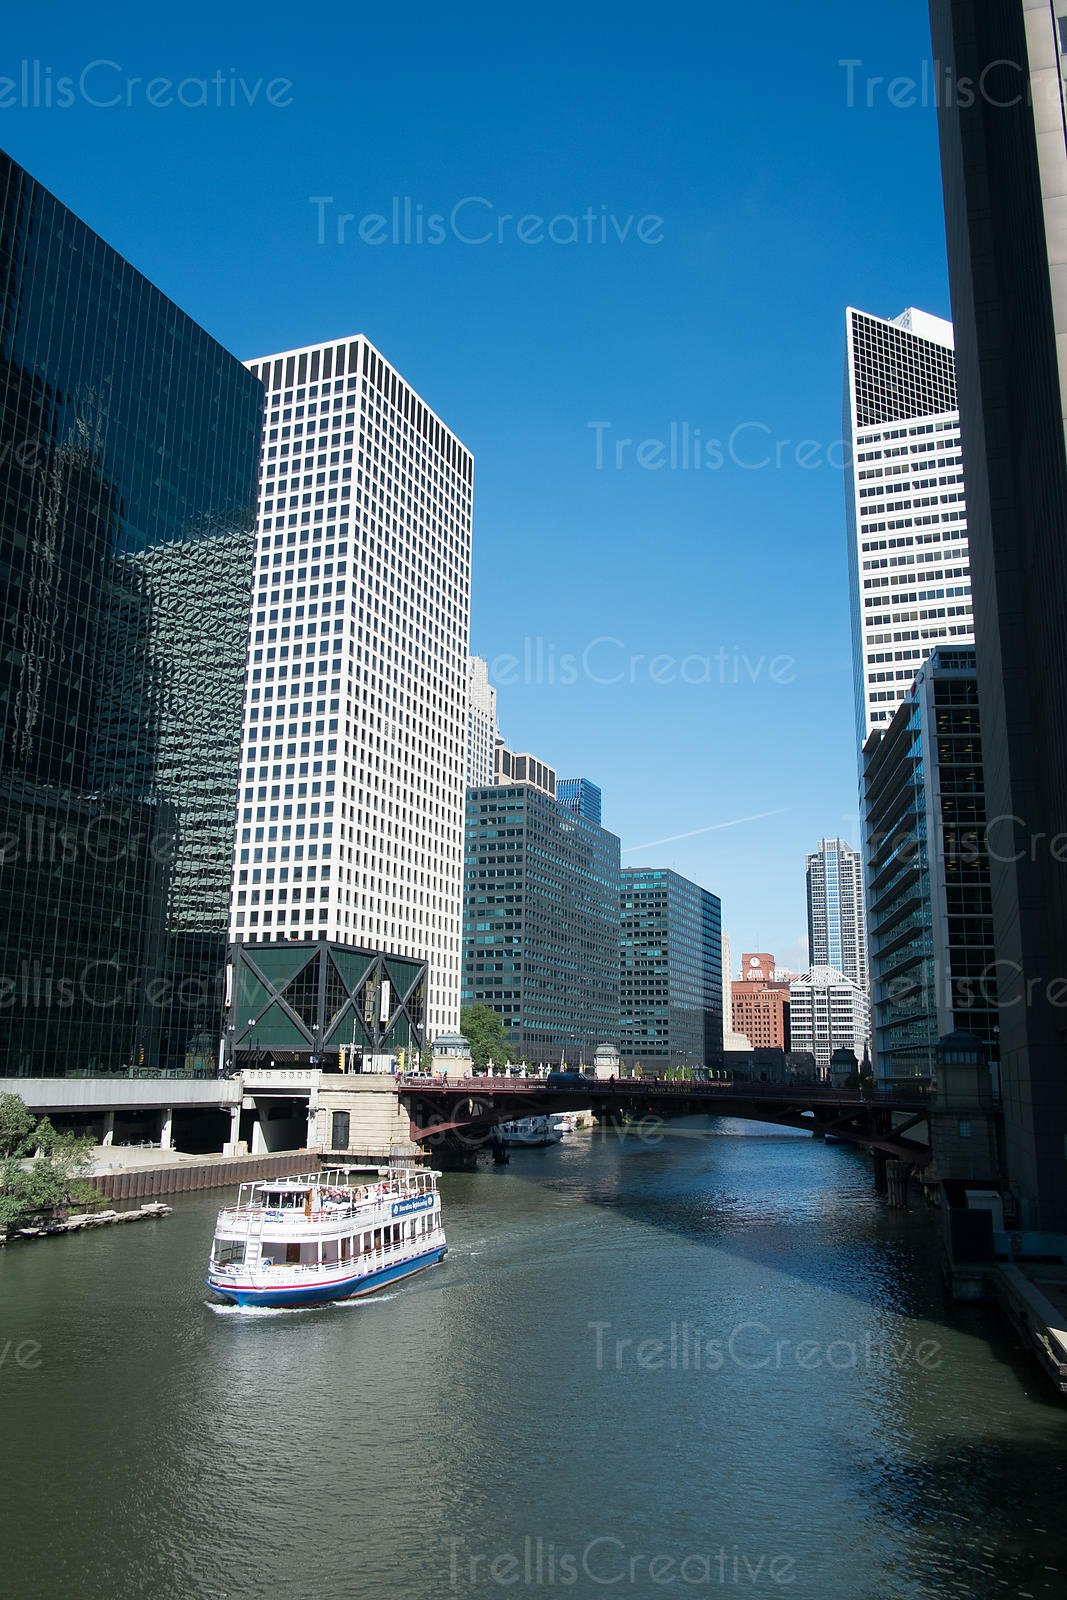 View of boat cruising in the river along the buildings, Chicago, USA